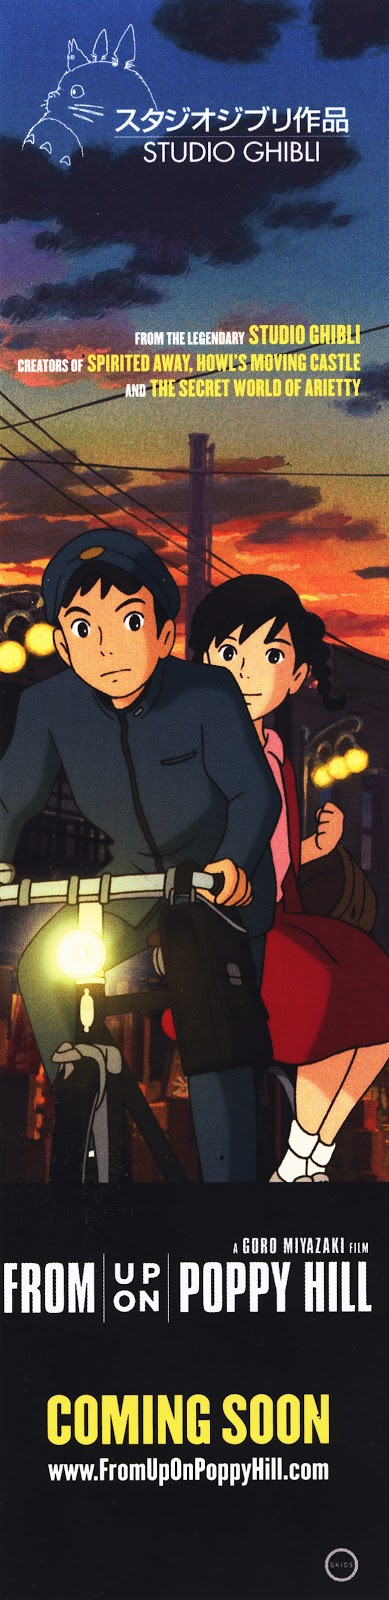 From Up on Poppy Hill promo bookmark, side 1